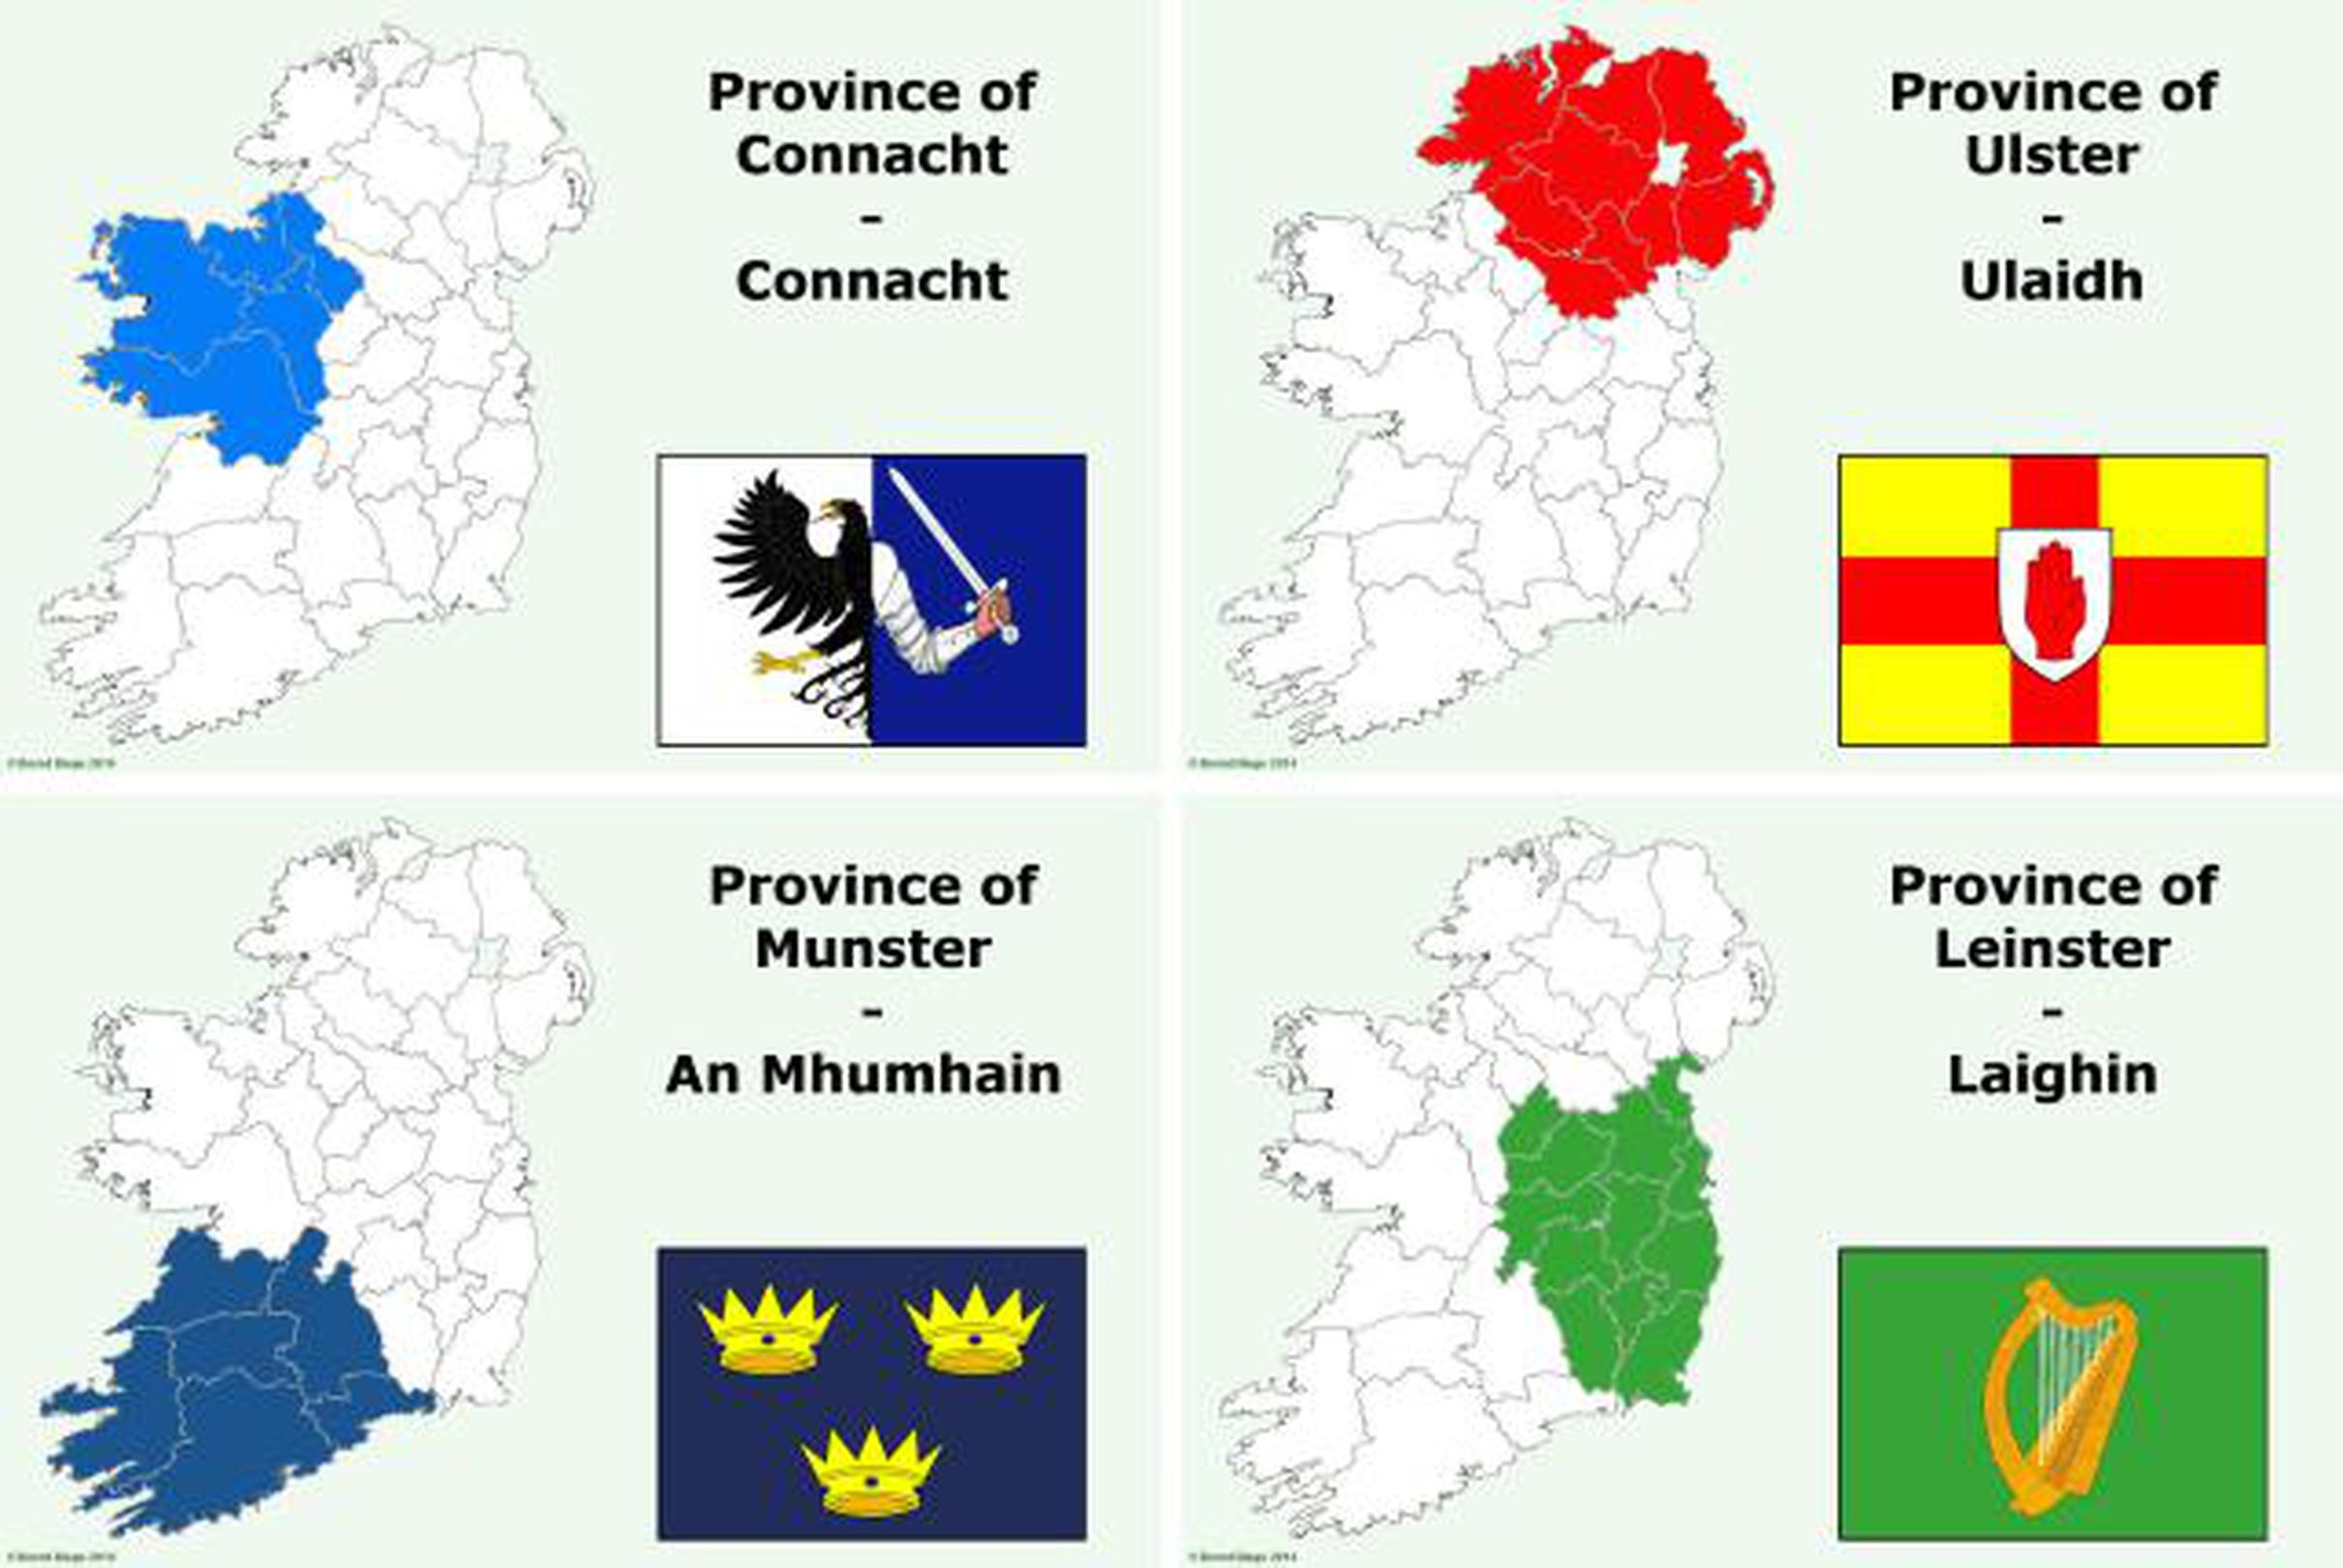 Map Of Ireland Provinces And Counties.Provinces Of Ireland Information And History